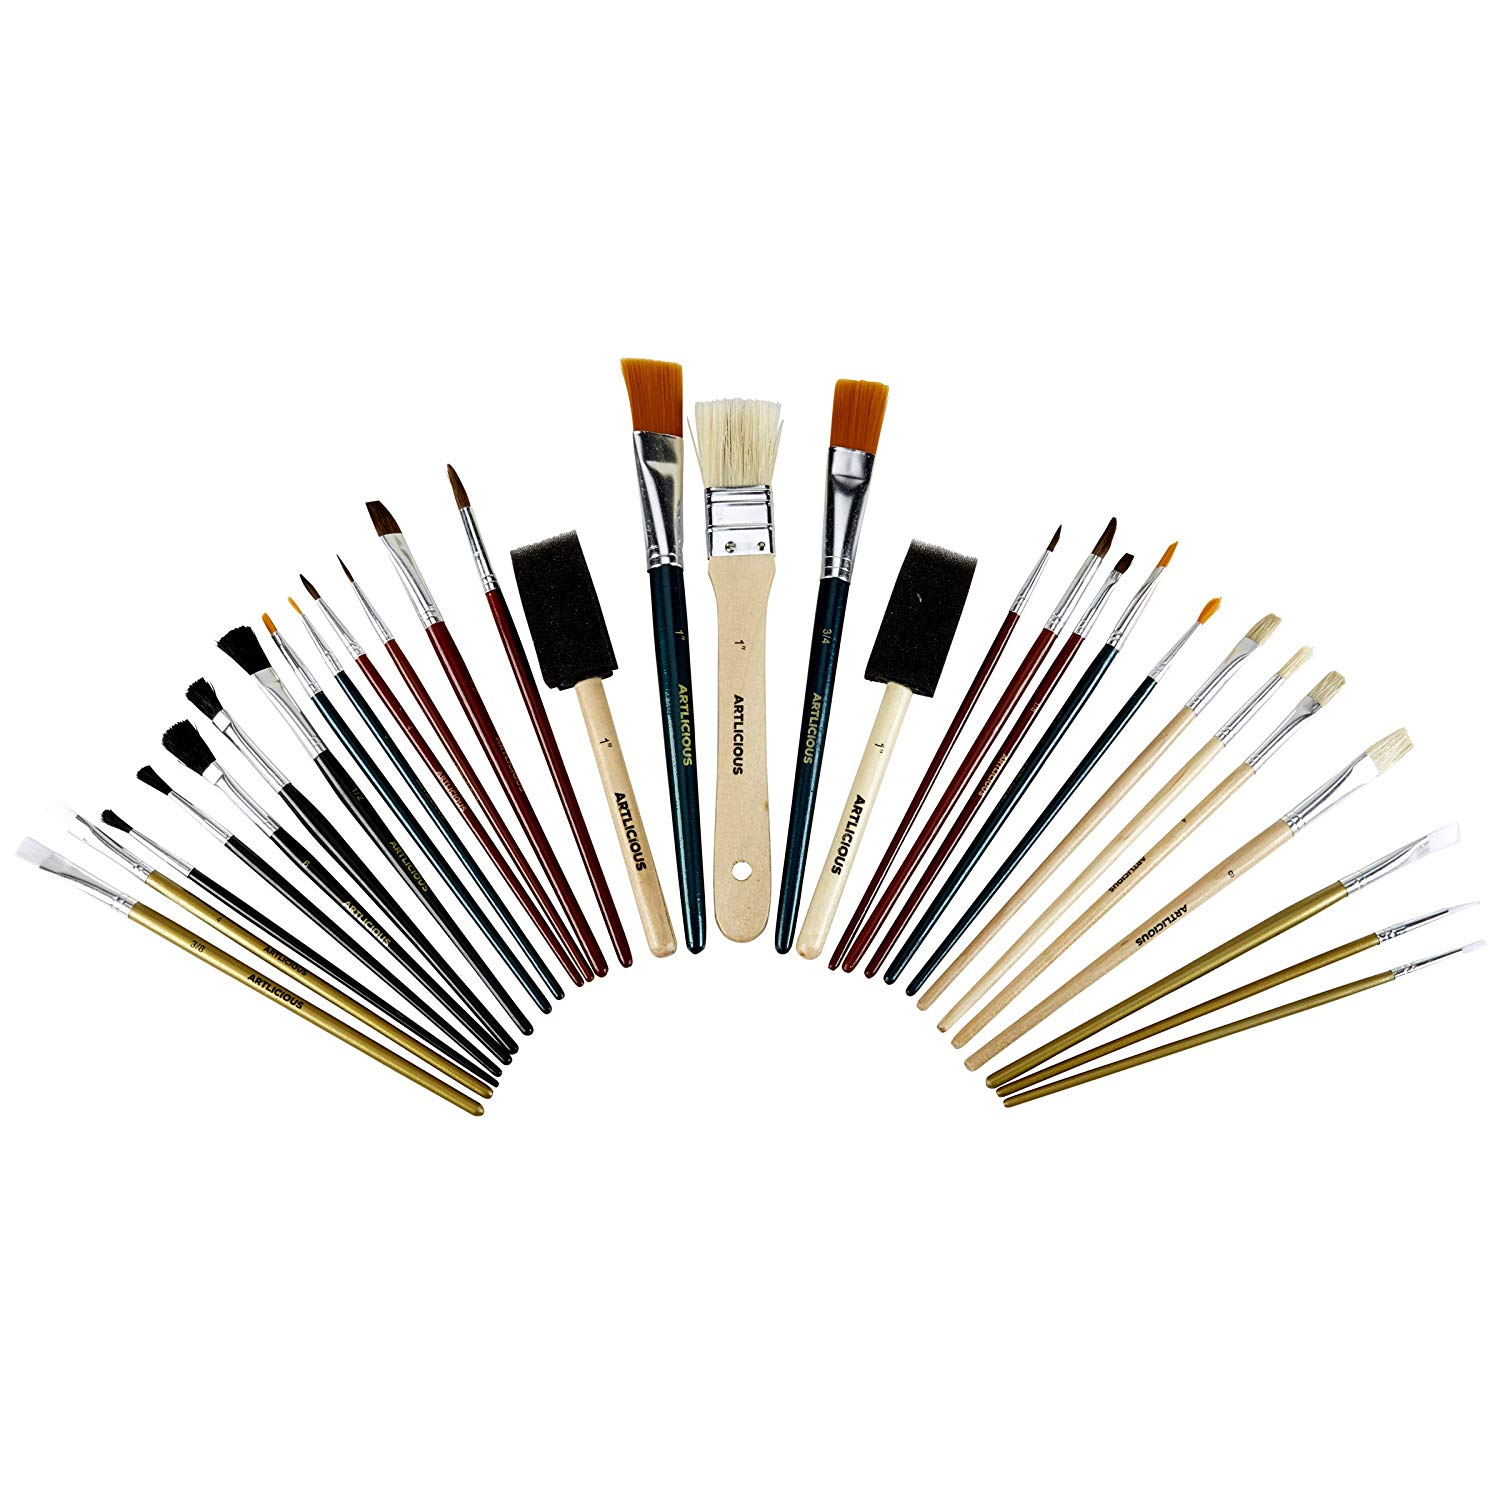 Artlicious - 30 All Purpose Paint Brush Value Pack - Great with Acrylic, Oil, Watercolor, Gouache